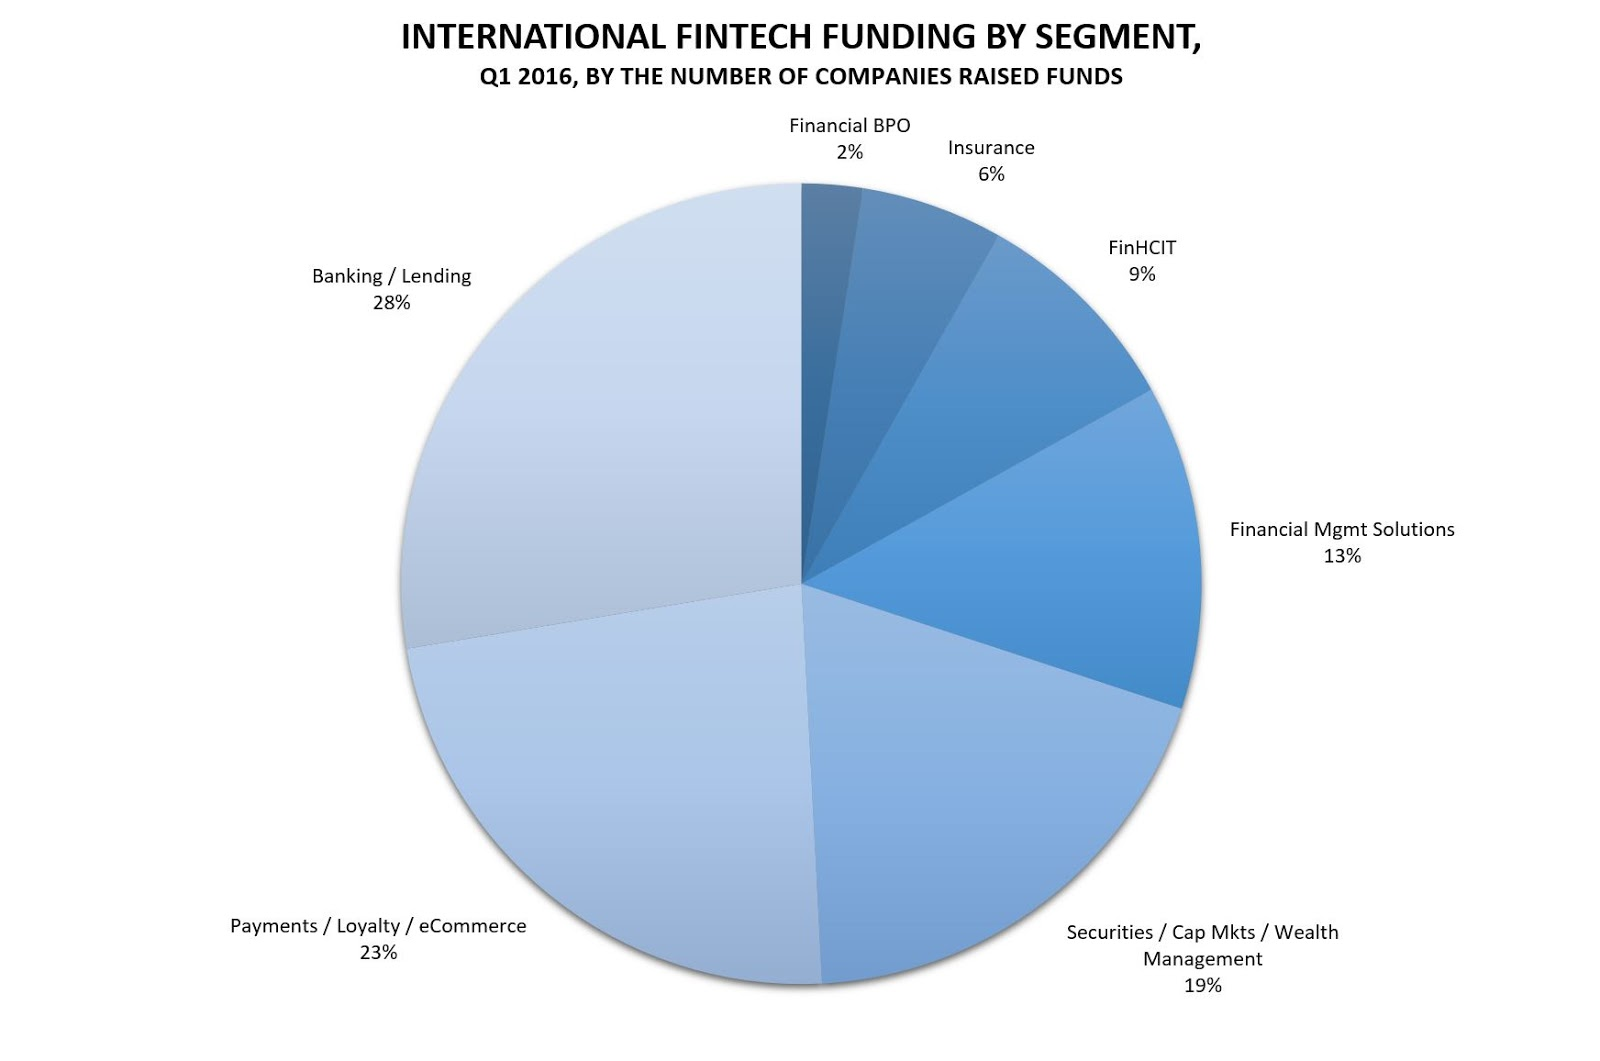 Investments in FinTech in Q1 2016 (by representation)